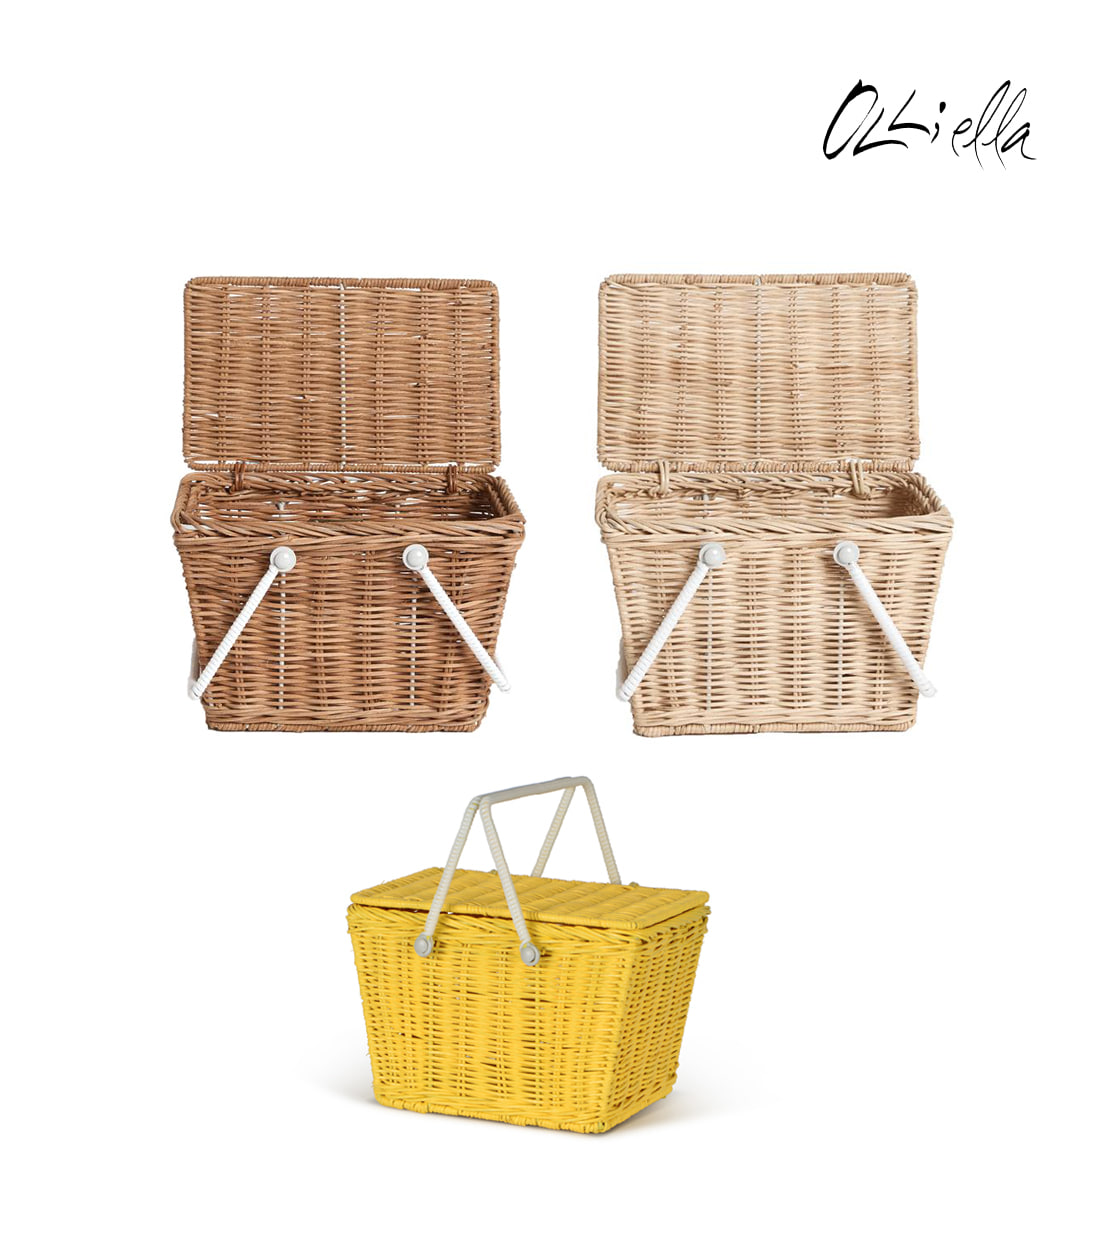 올리엘라 PIKI BASKET / 3 COLORS